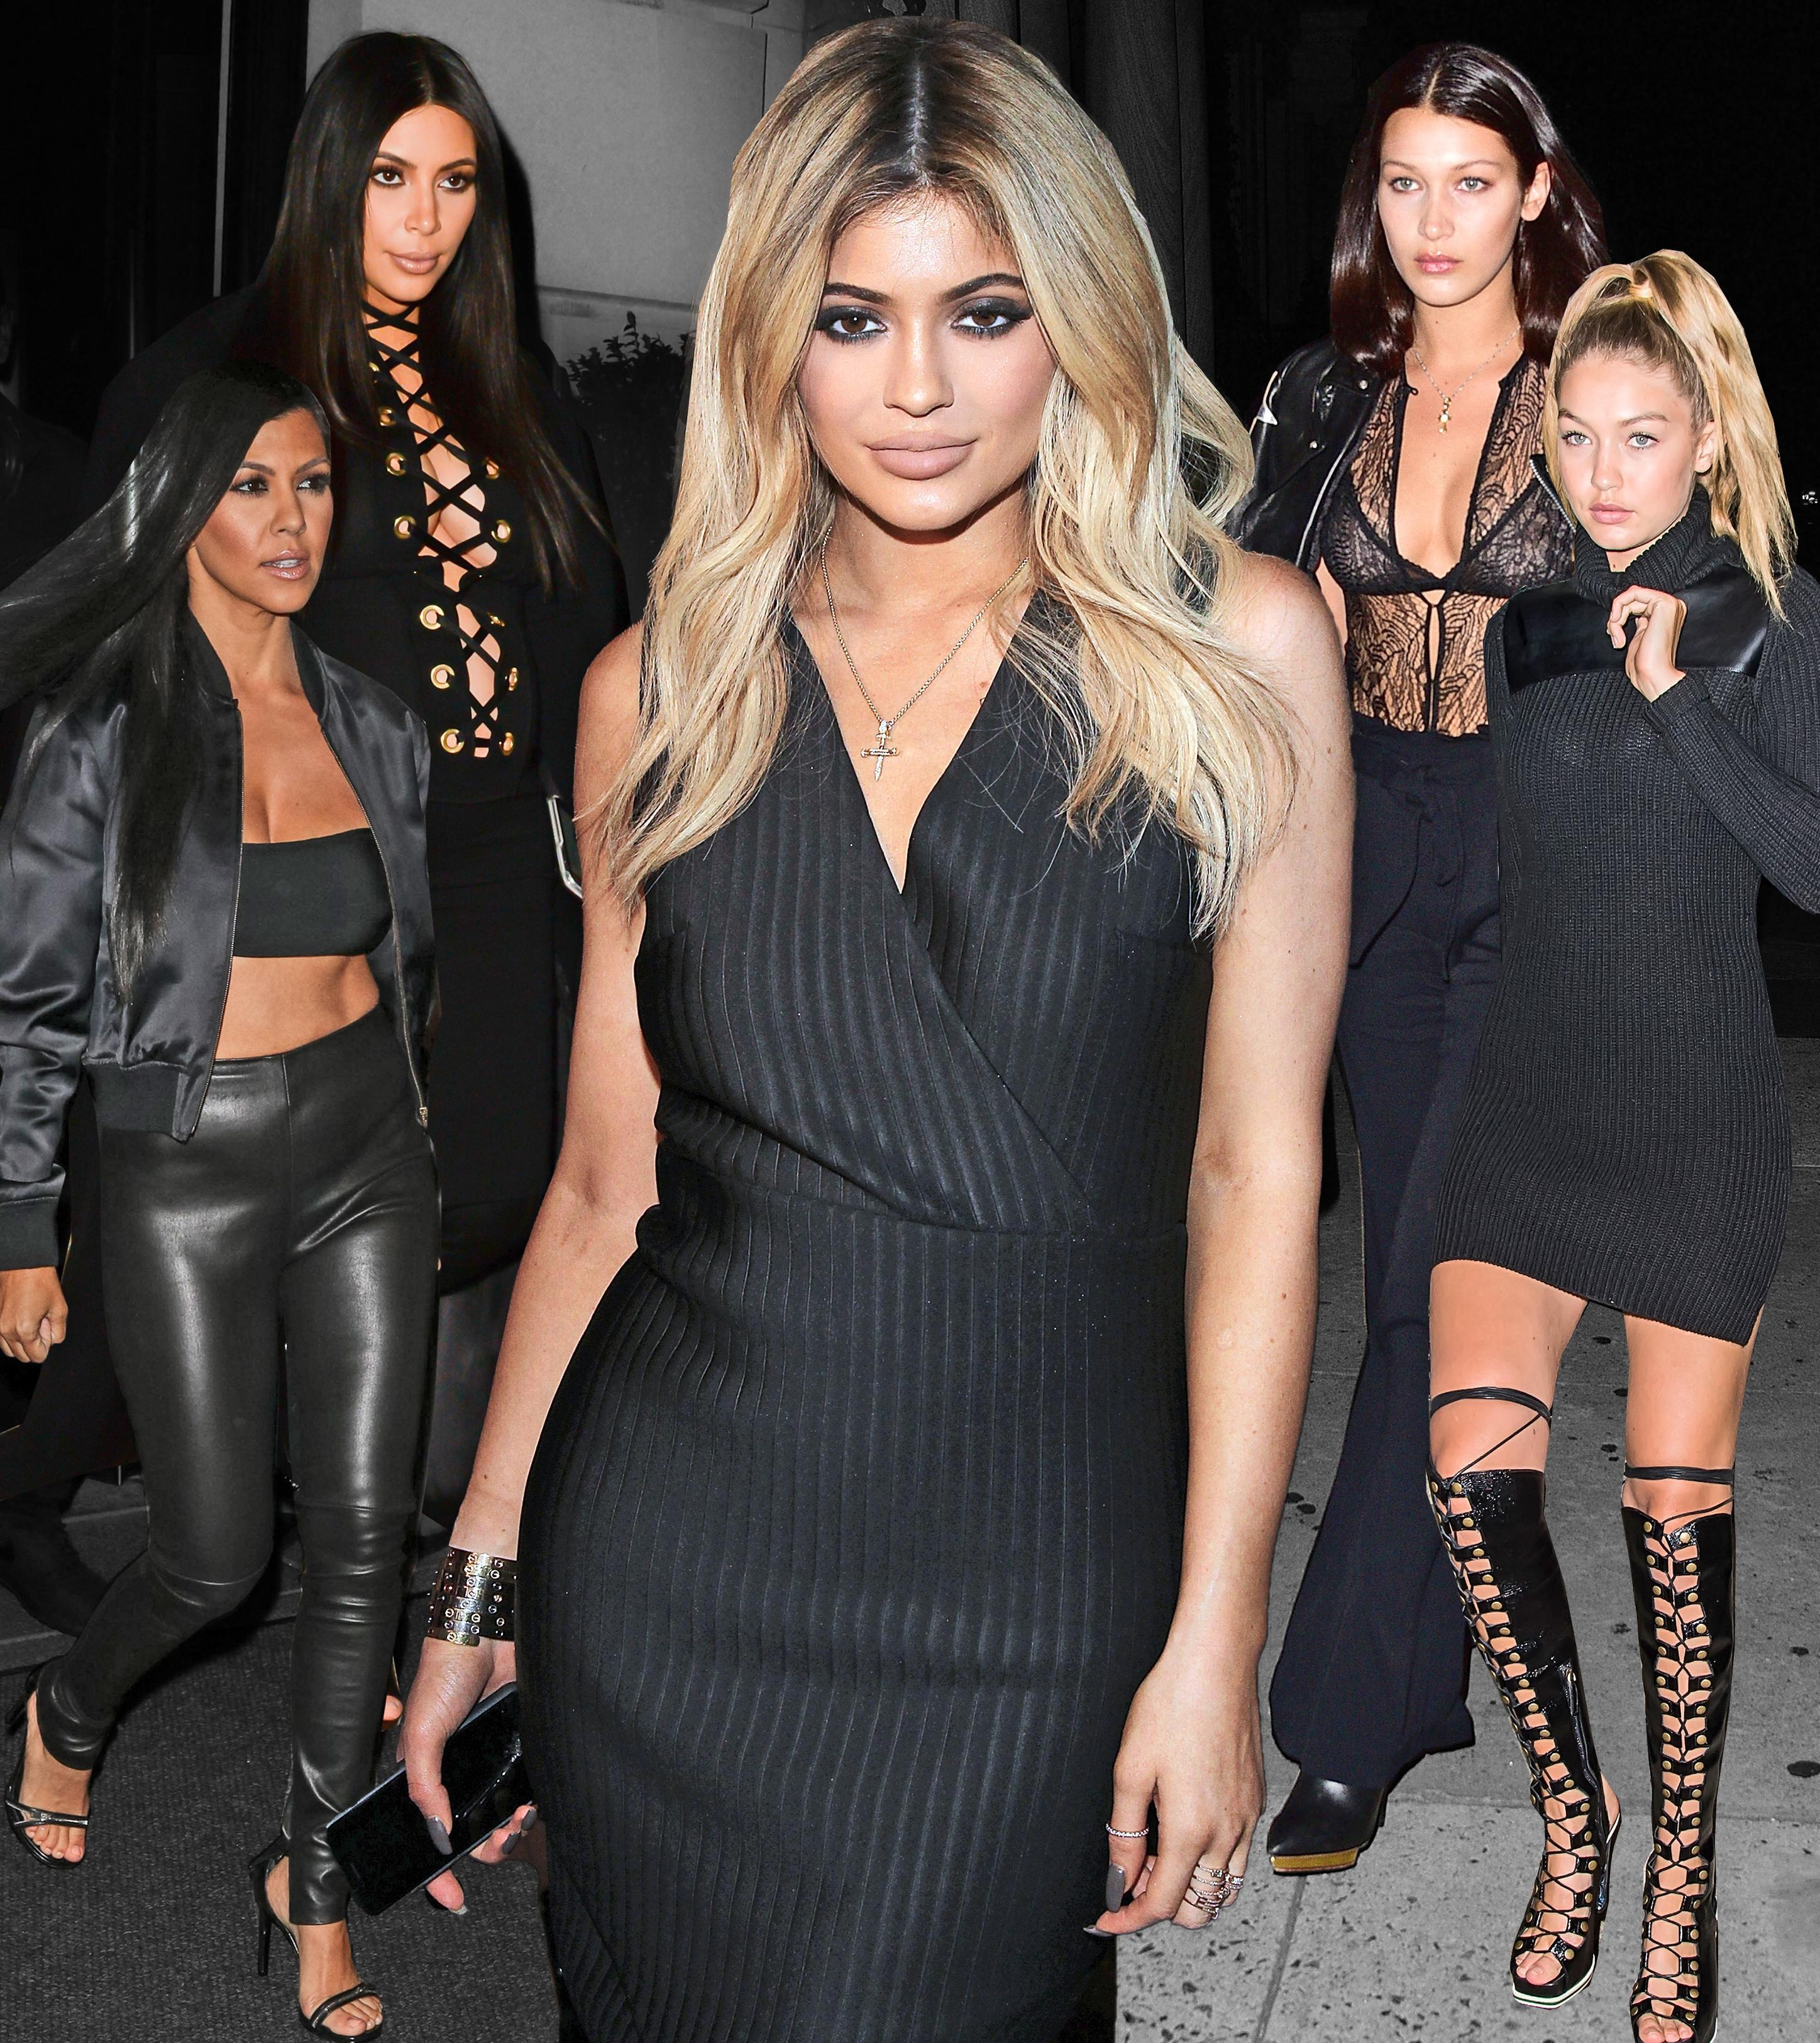 Black dress code party - Cool Kids Dress Code Kardashian Jenner Hadid Squad Wear All Black Errthang